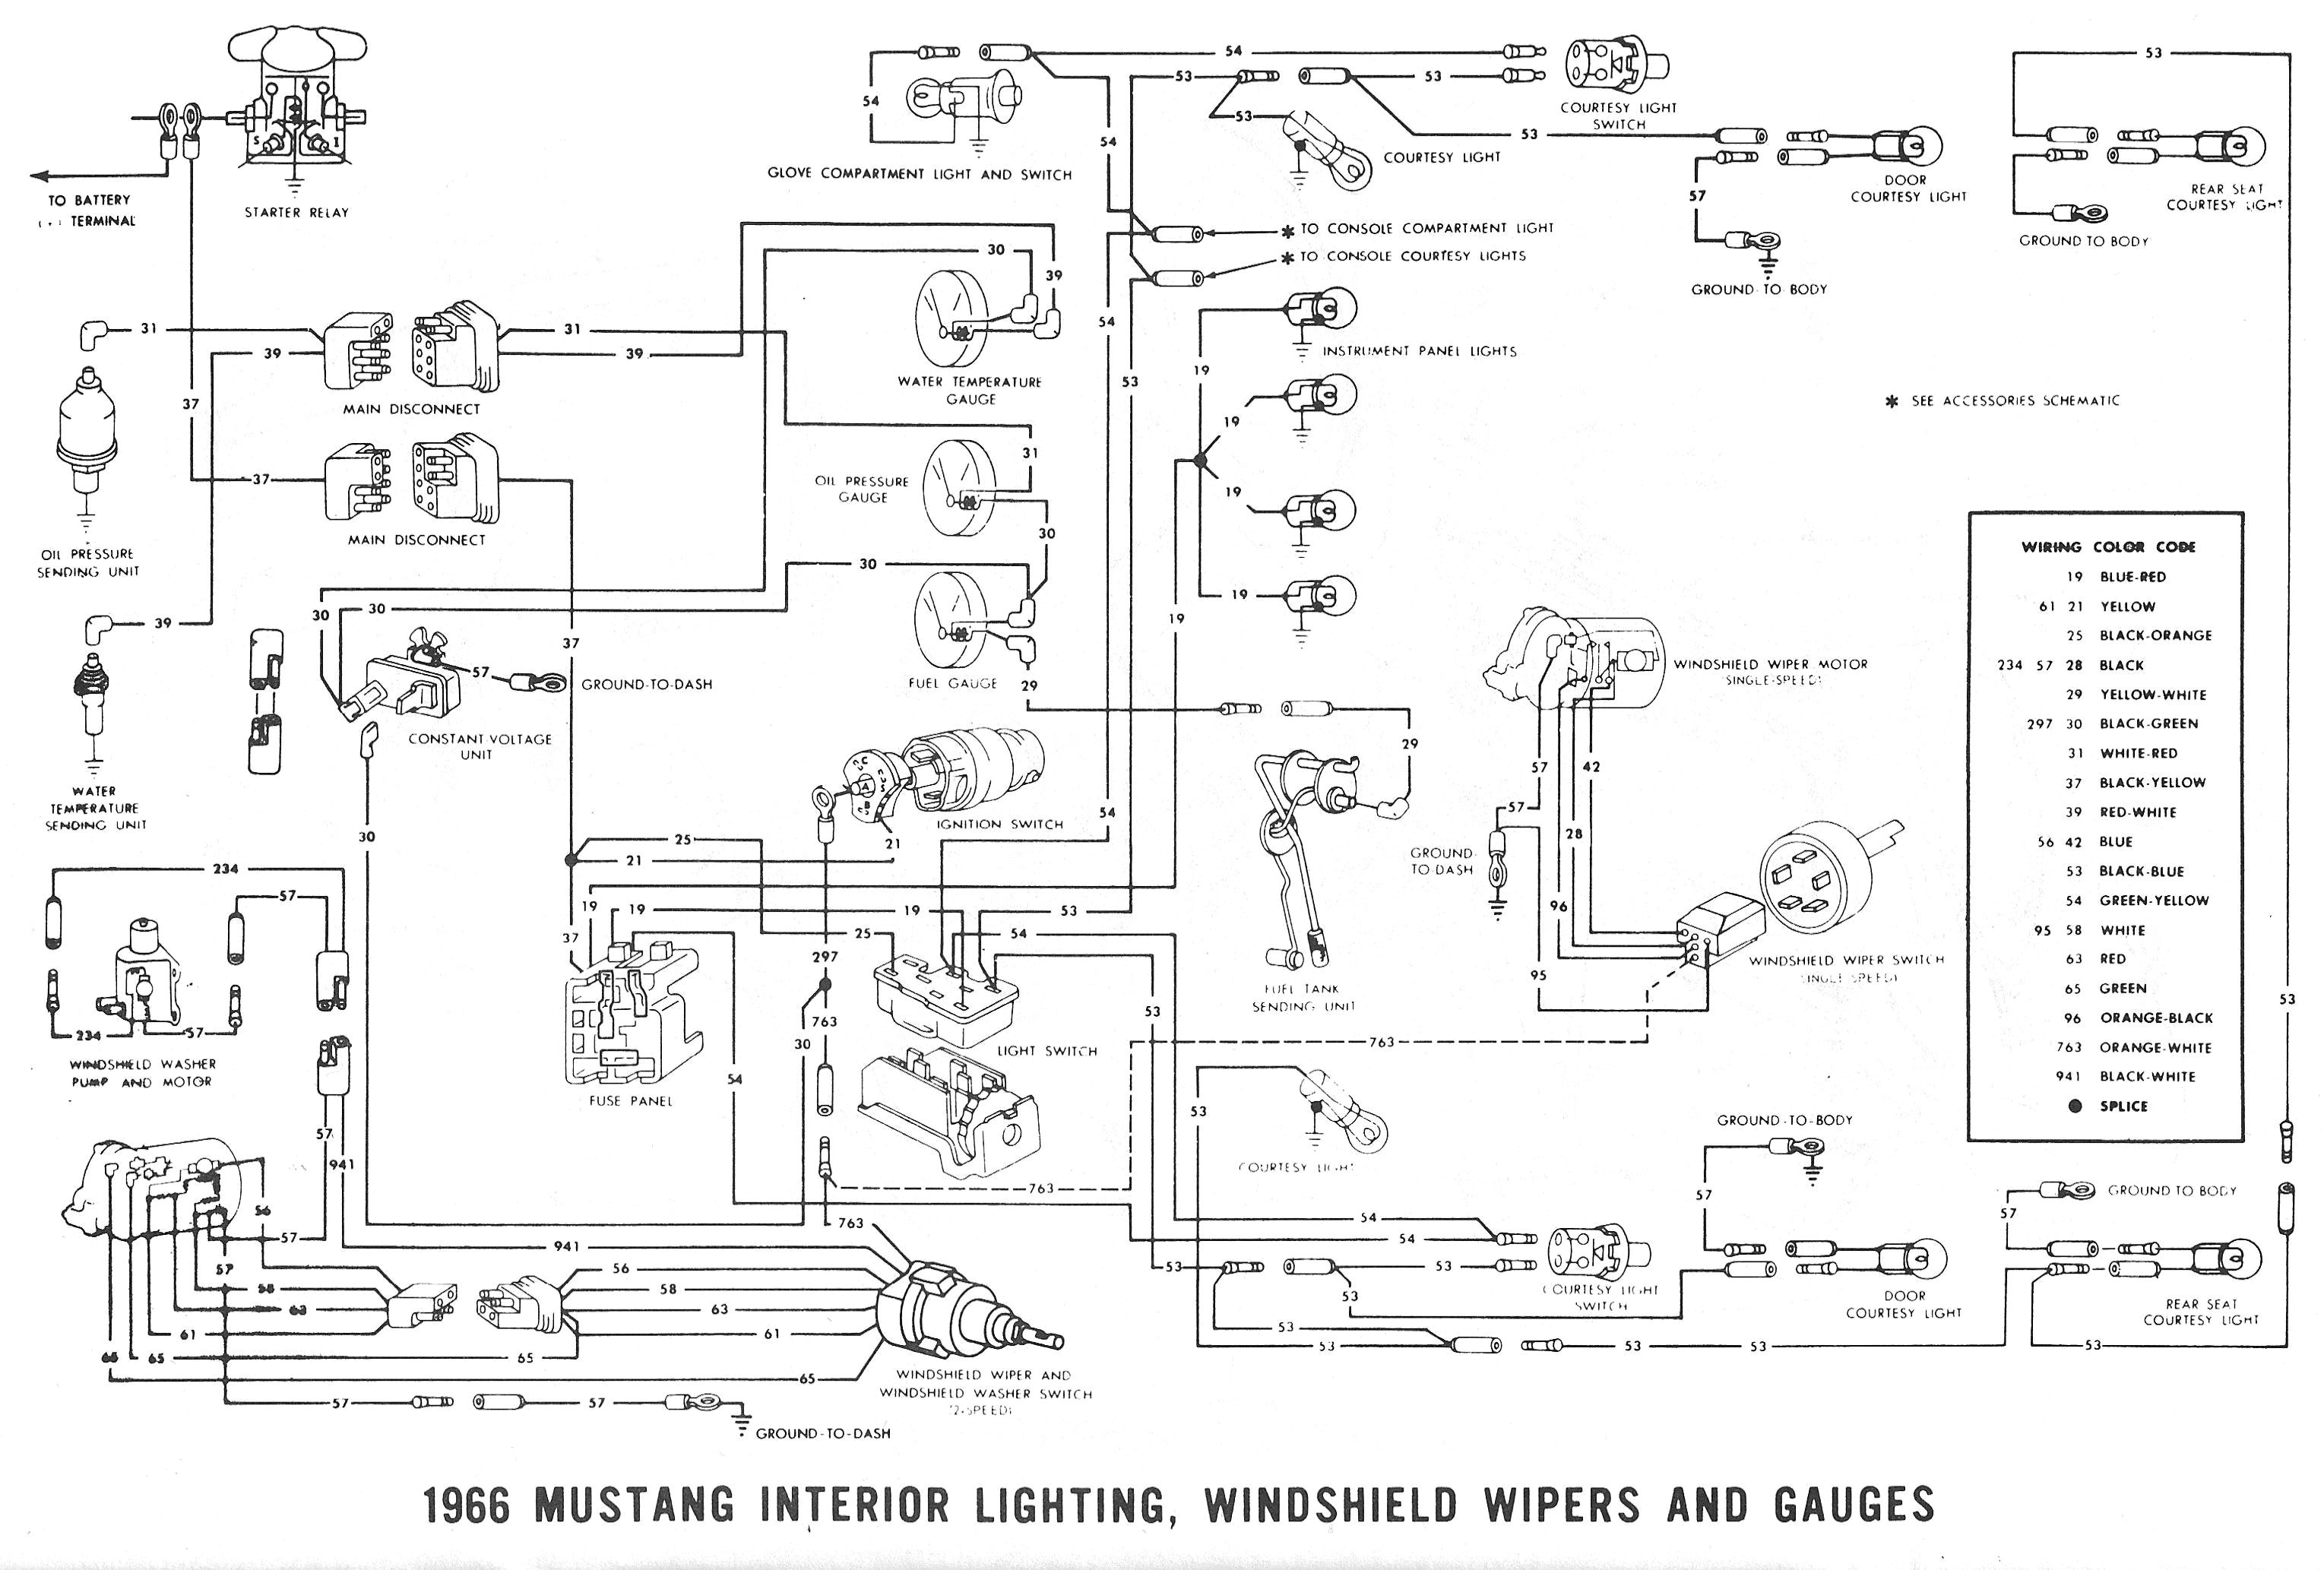 67 Mustang Wiring Diagram Library Generator 19641 2 And Alternator 1965 Up 2015 Schematic Complete Diagrams U2022